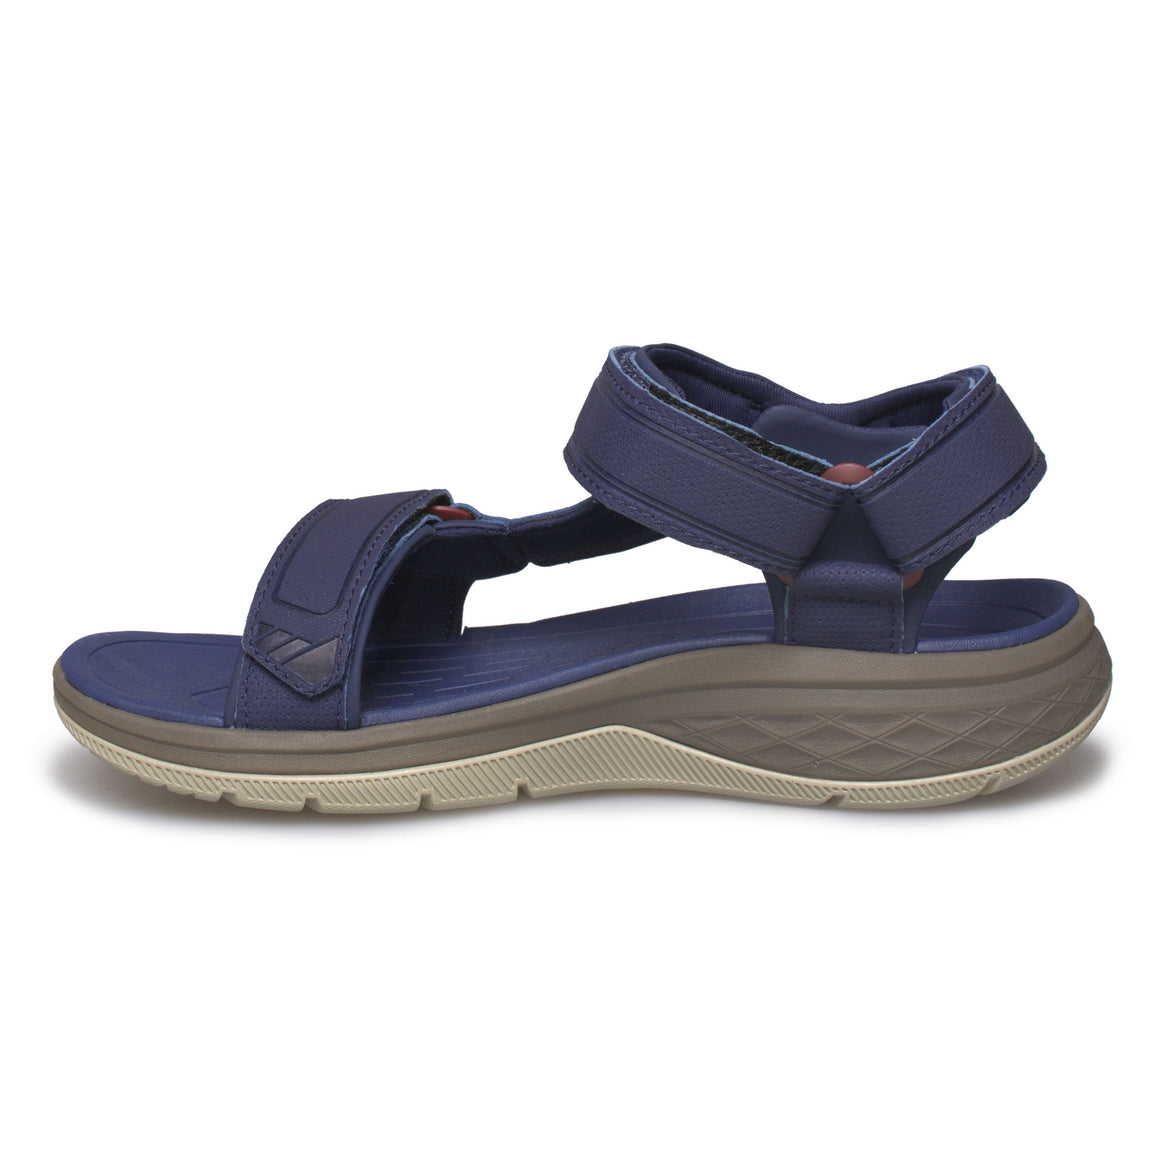 Teva Strata Universal Eclipse Sandals - Men's